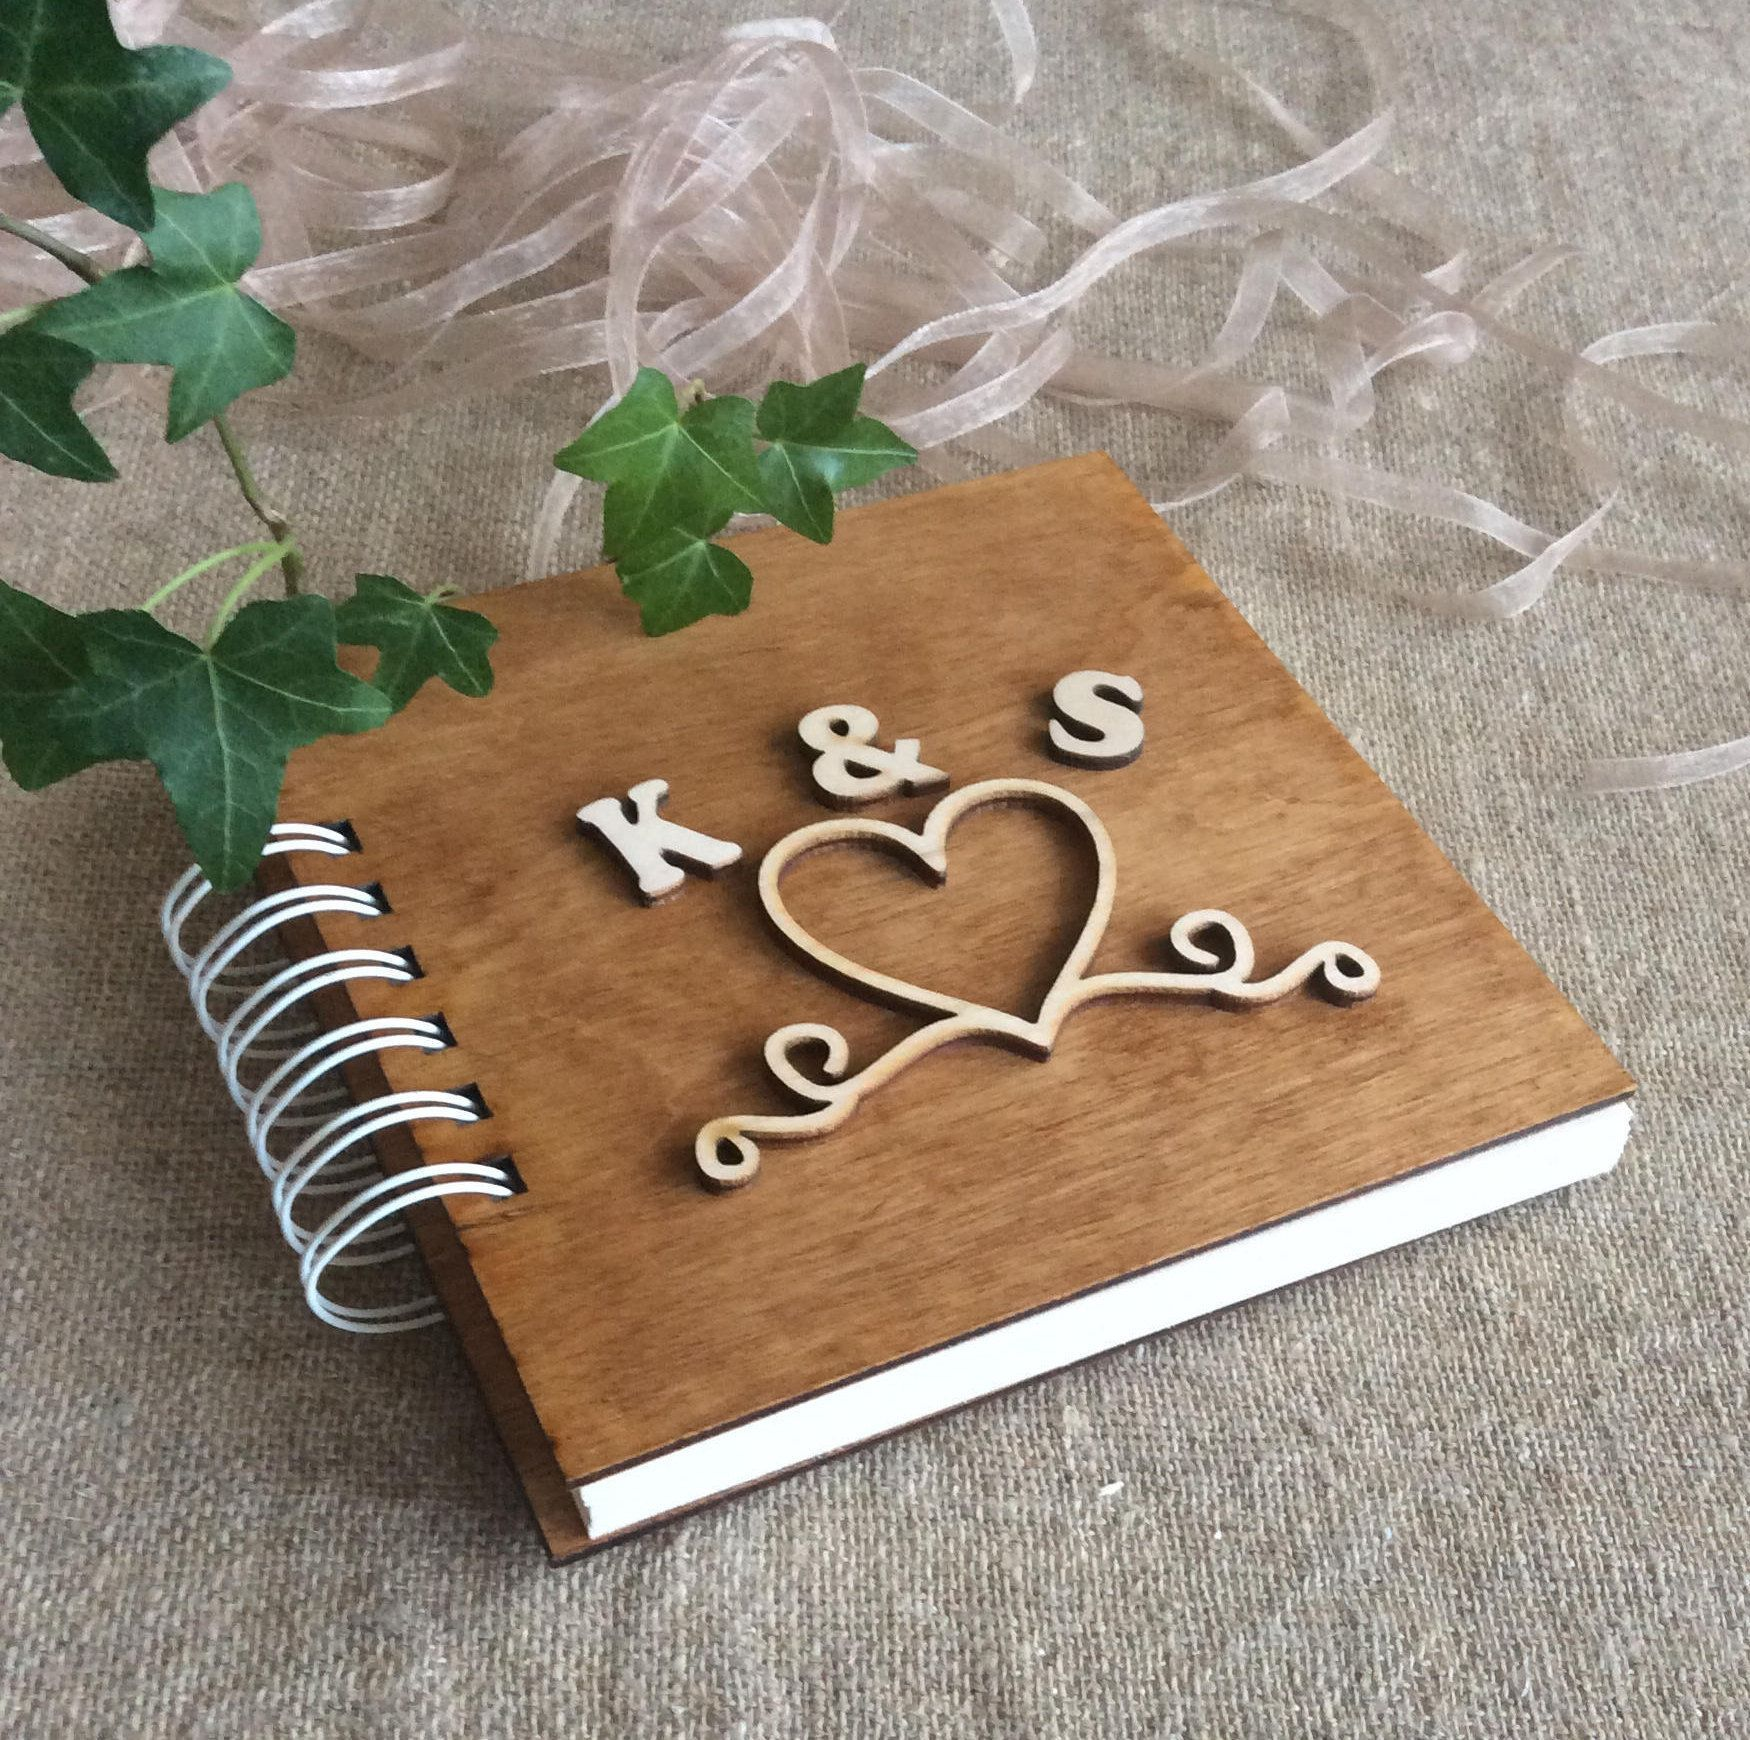 1 Year Anniversary Gift for Boyfriend, Small Personalized ...